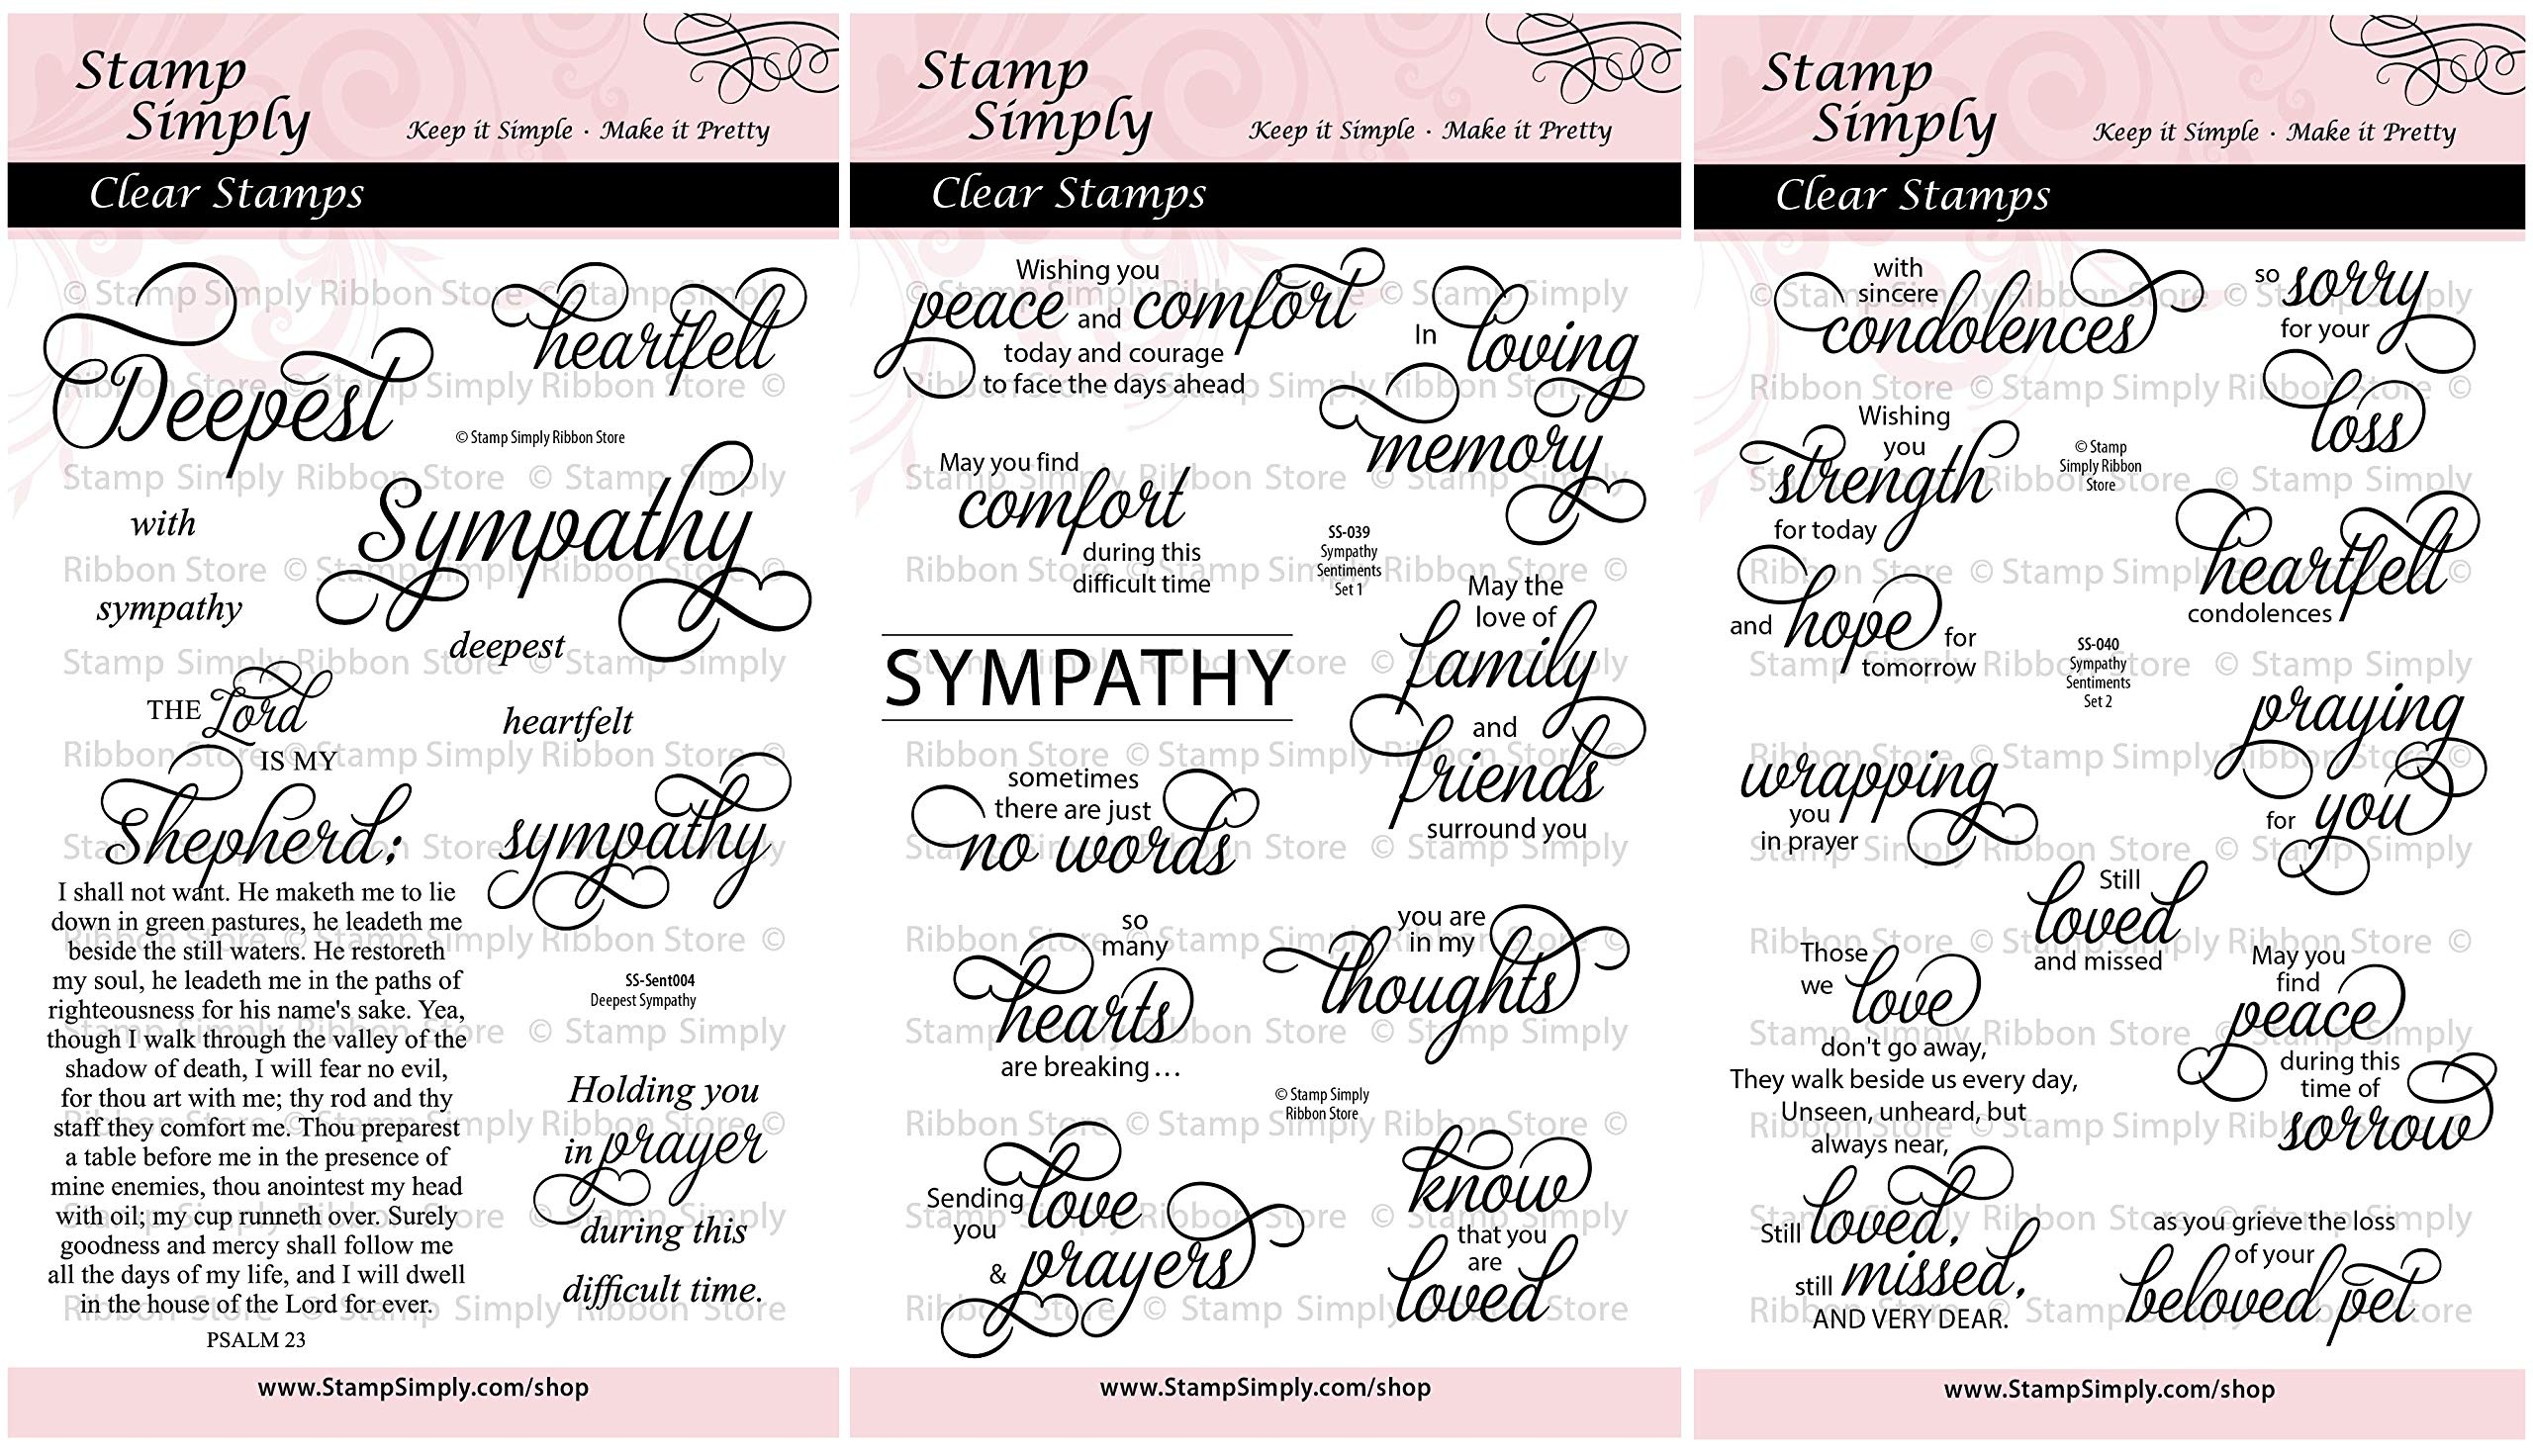 Stamp Simply Clear Stamps Sympathy Sentiments Trio Condolences and Loss (3-Pack) 4x6 Inch Sheets - 30 Pieces